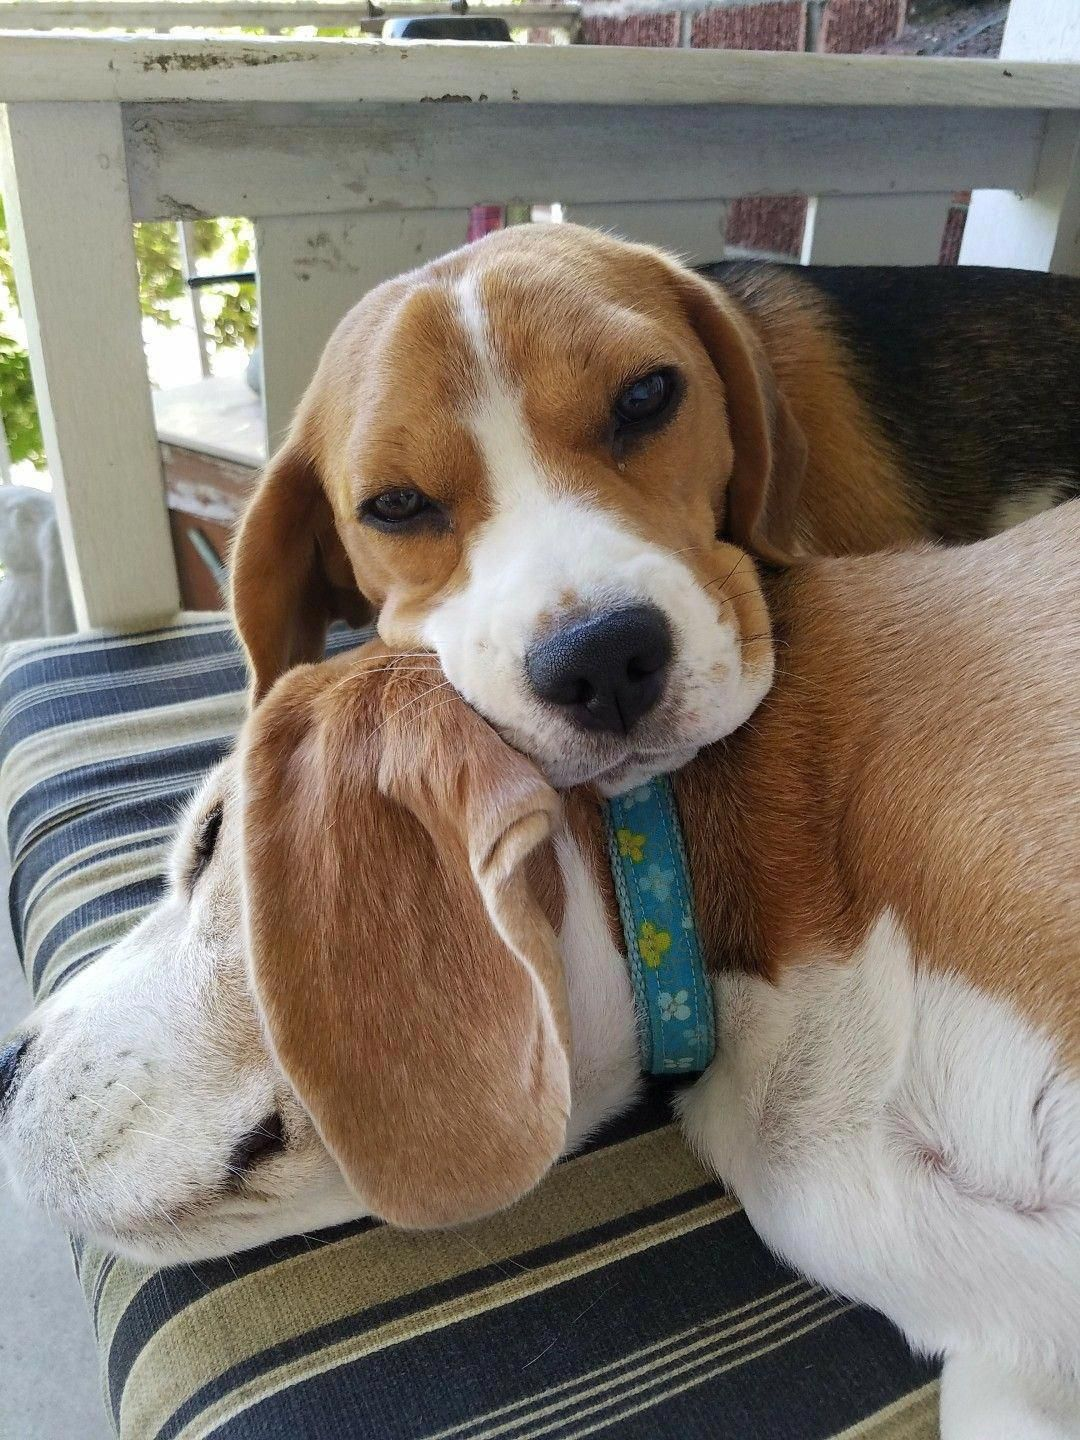 Pin By Qwertyuiop On Beagle Beagle Puppy Cute Beagles Dog Breeds